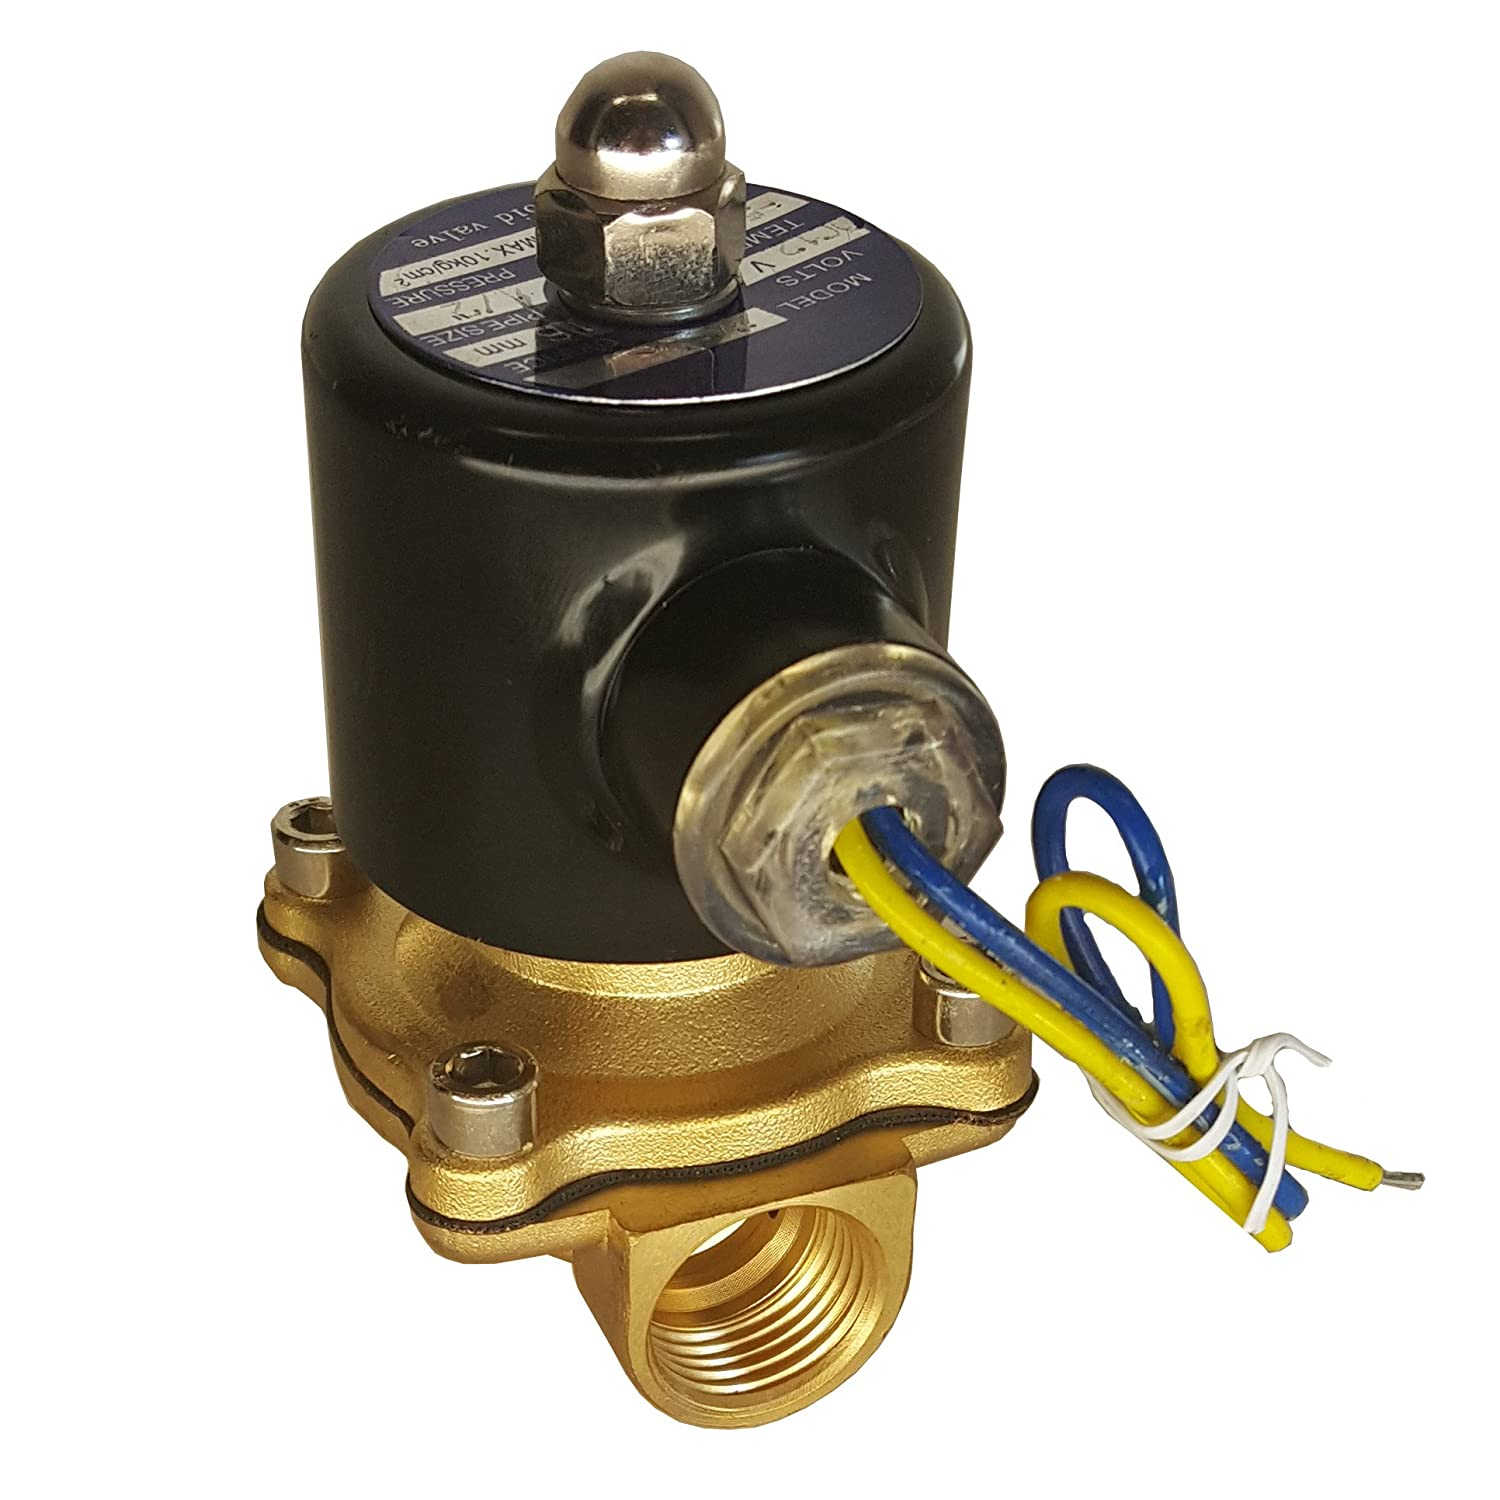 "HFS (R) 110v Ac or 12v Dc Electric Solenoid Valve Water, Air - 1/4"", 1/2"", 3/4"", 1"" NPT Available (12V DC 3/4"" NPT)"